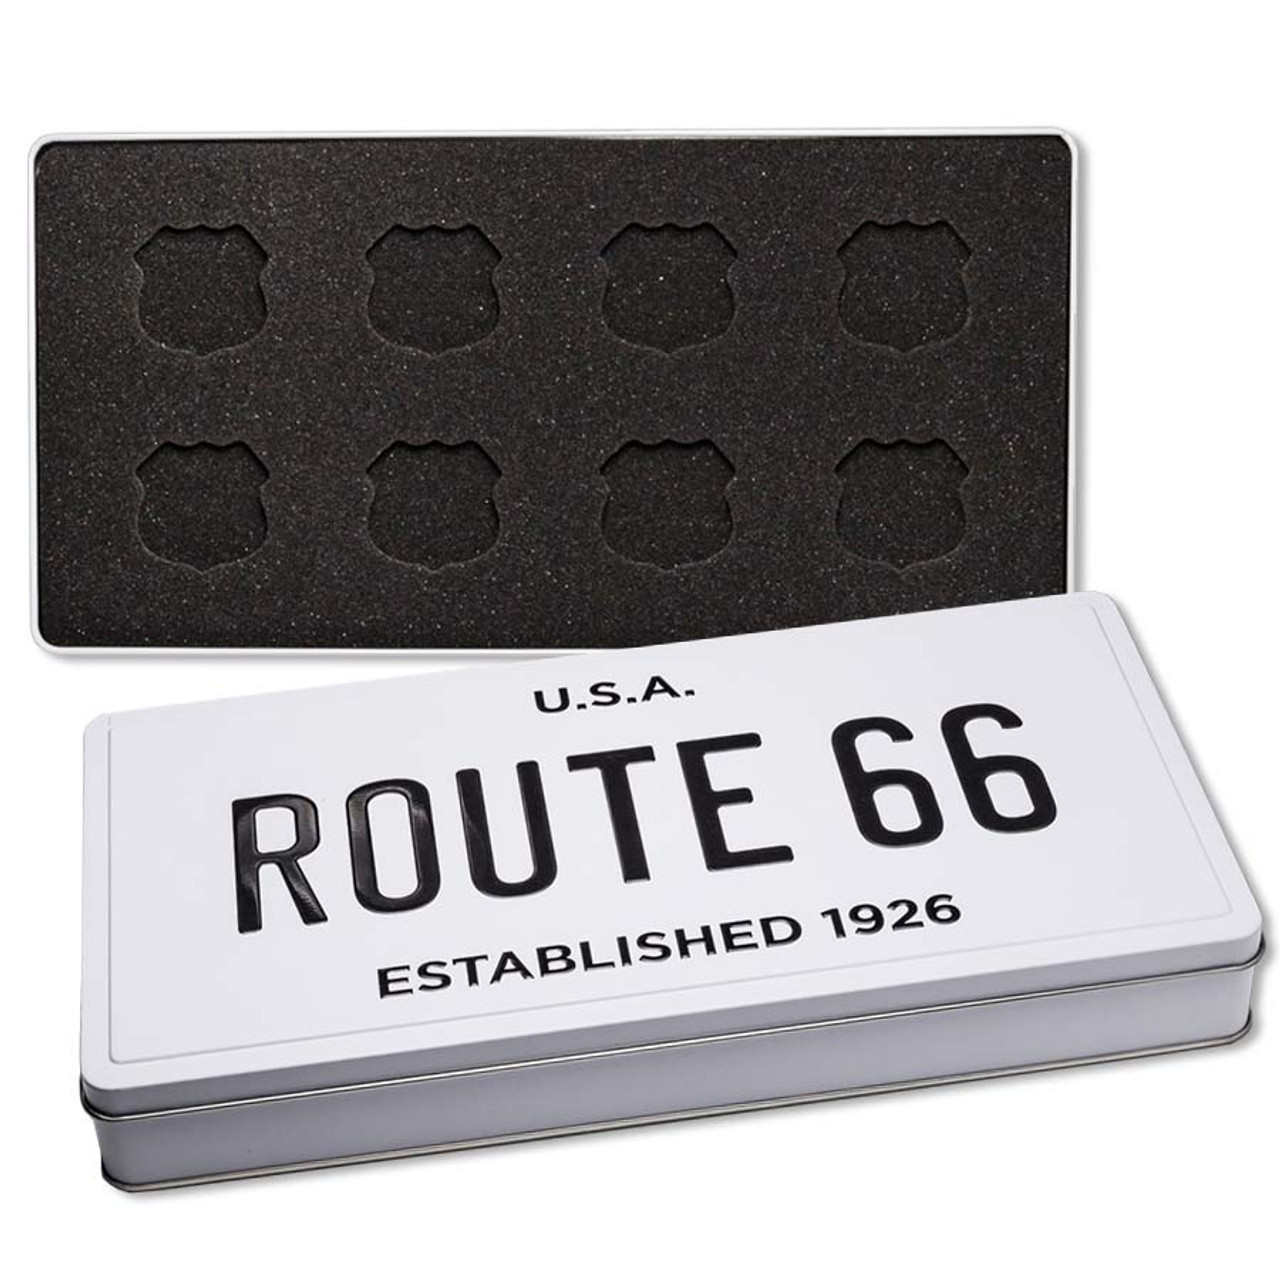 Custom Route 66 License Plate Case for Silver Shields Image 1